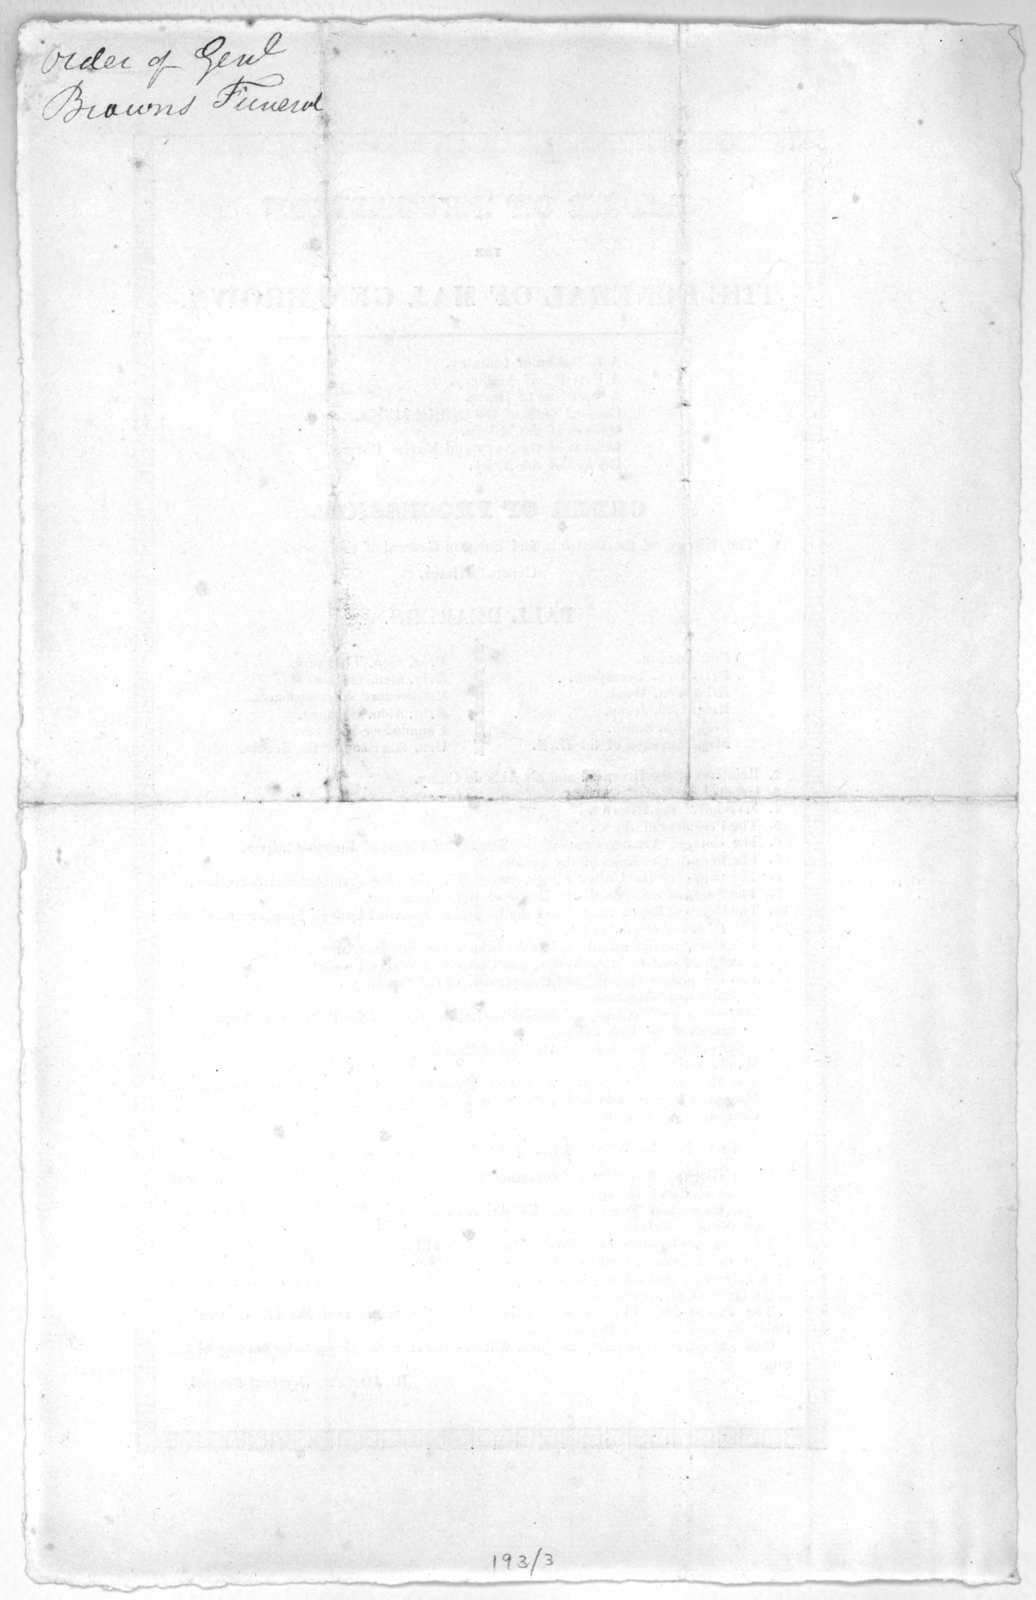 Order of procession for the funeral of Maj. Gen. Brown ... R. Jones, Adjutant General [Washington, D. C. February, 1828].